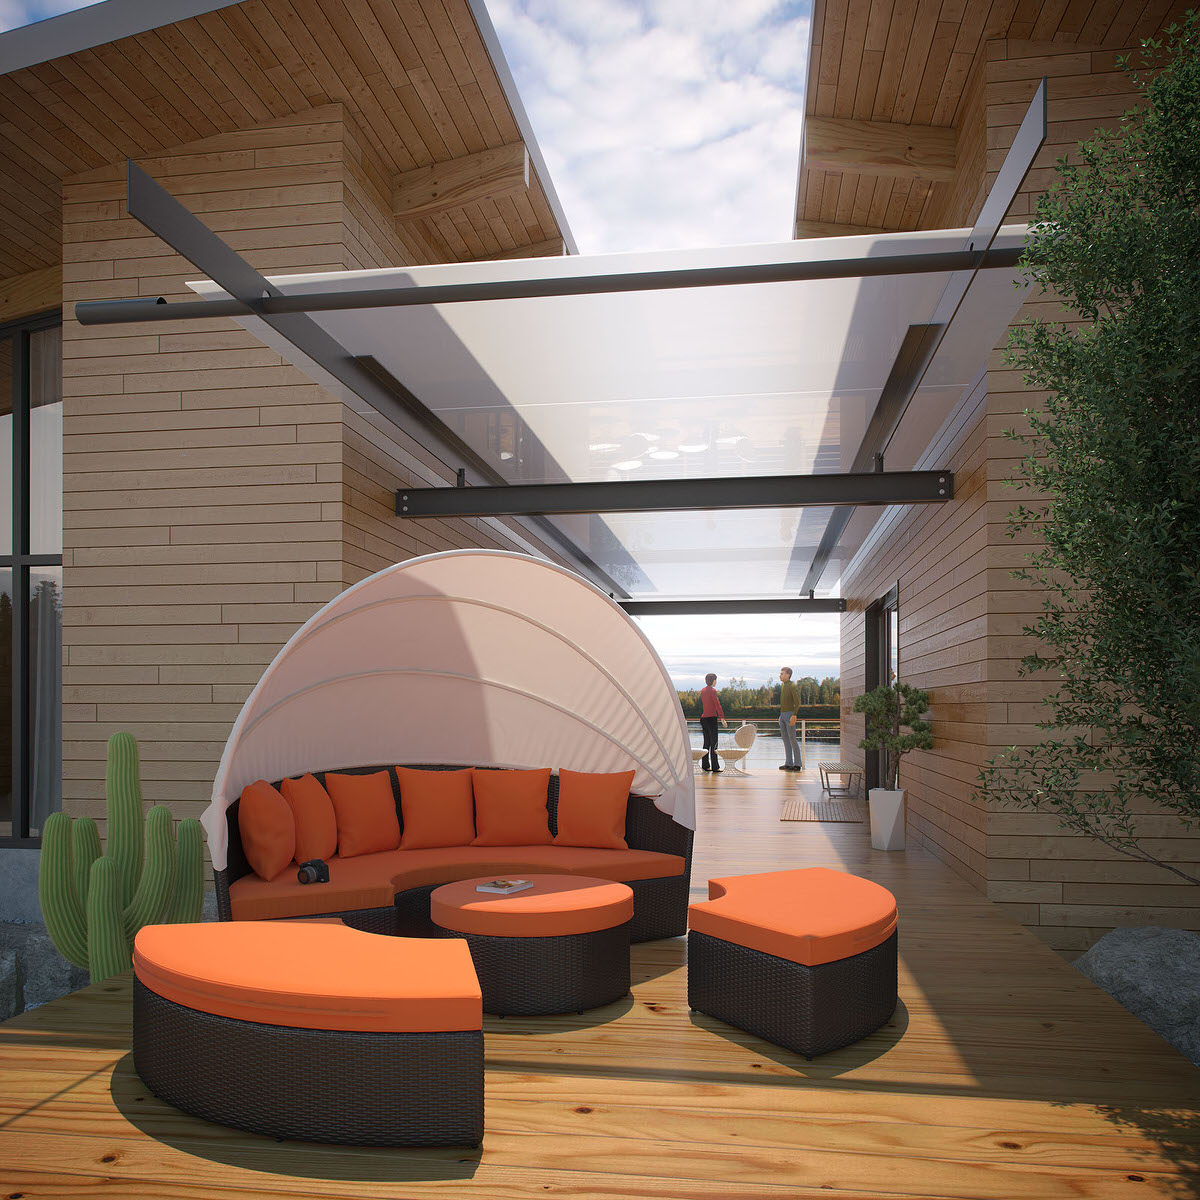 & Quest Canopy Outdoor Patio Daybed Espresso Orange by Modway